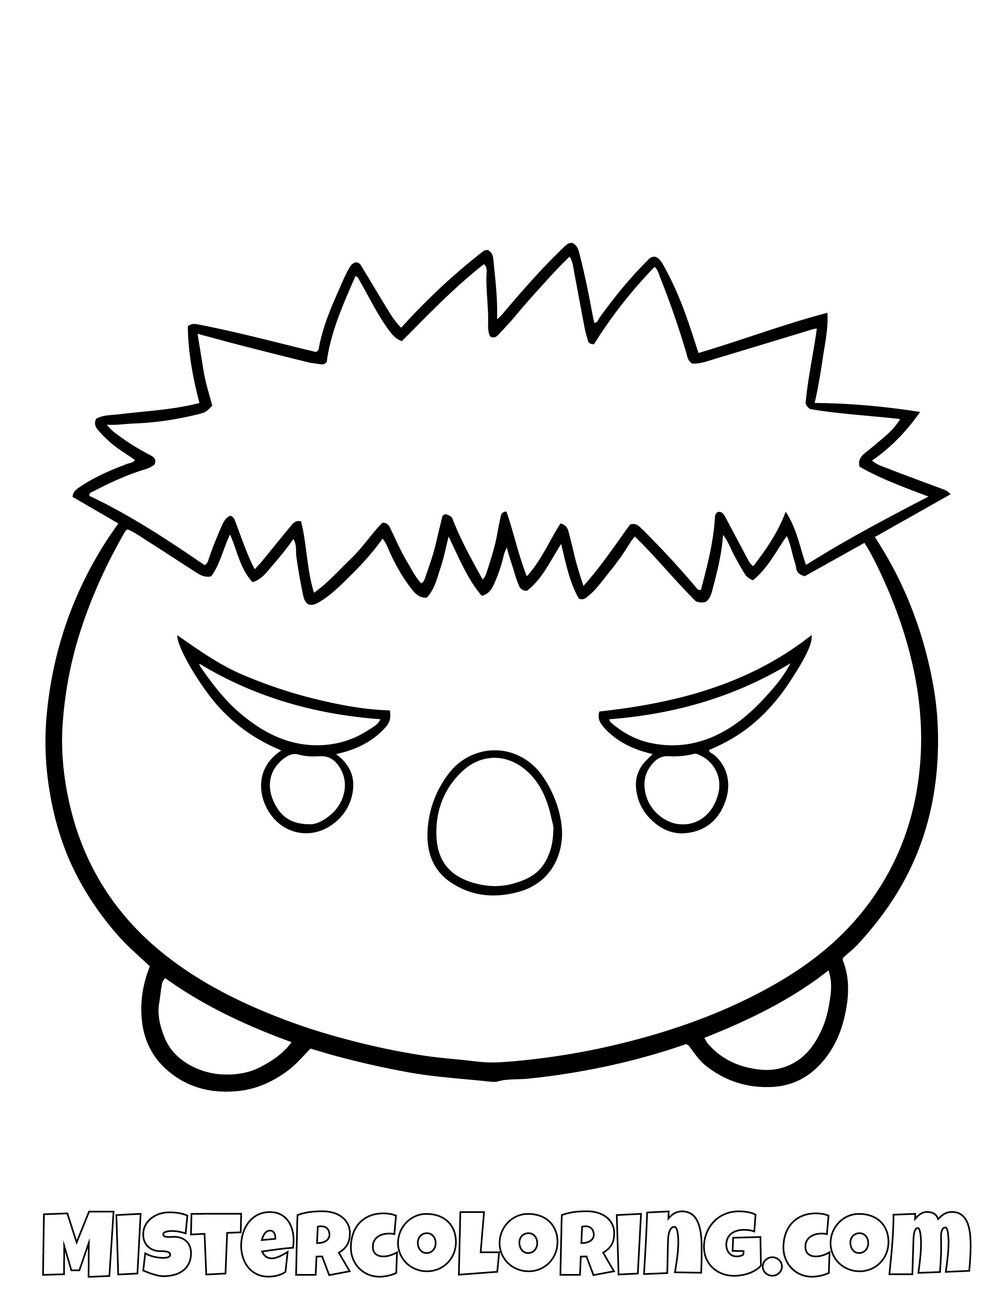 The Hulk From Avengers Tsum Tsum Coloring Pages For Kids With